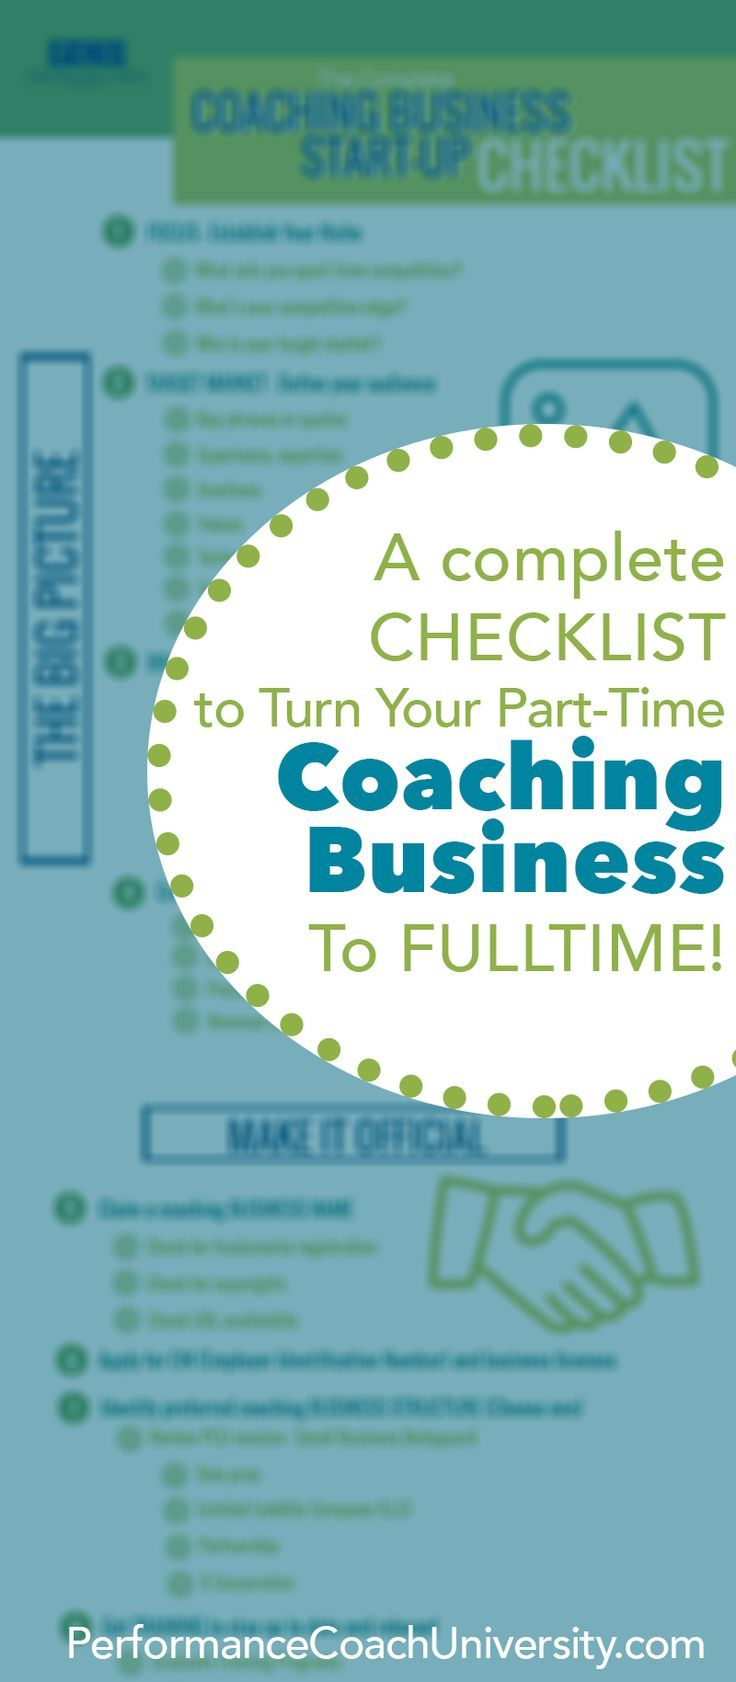 Best Business Coaching Images On   Business Coaching